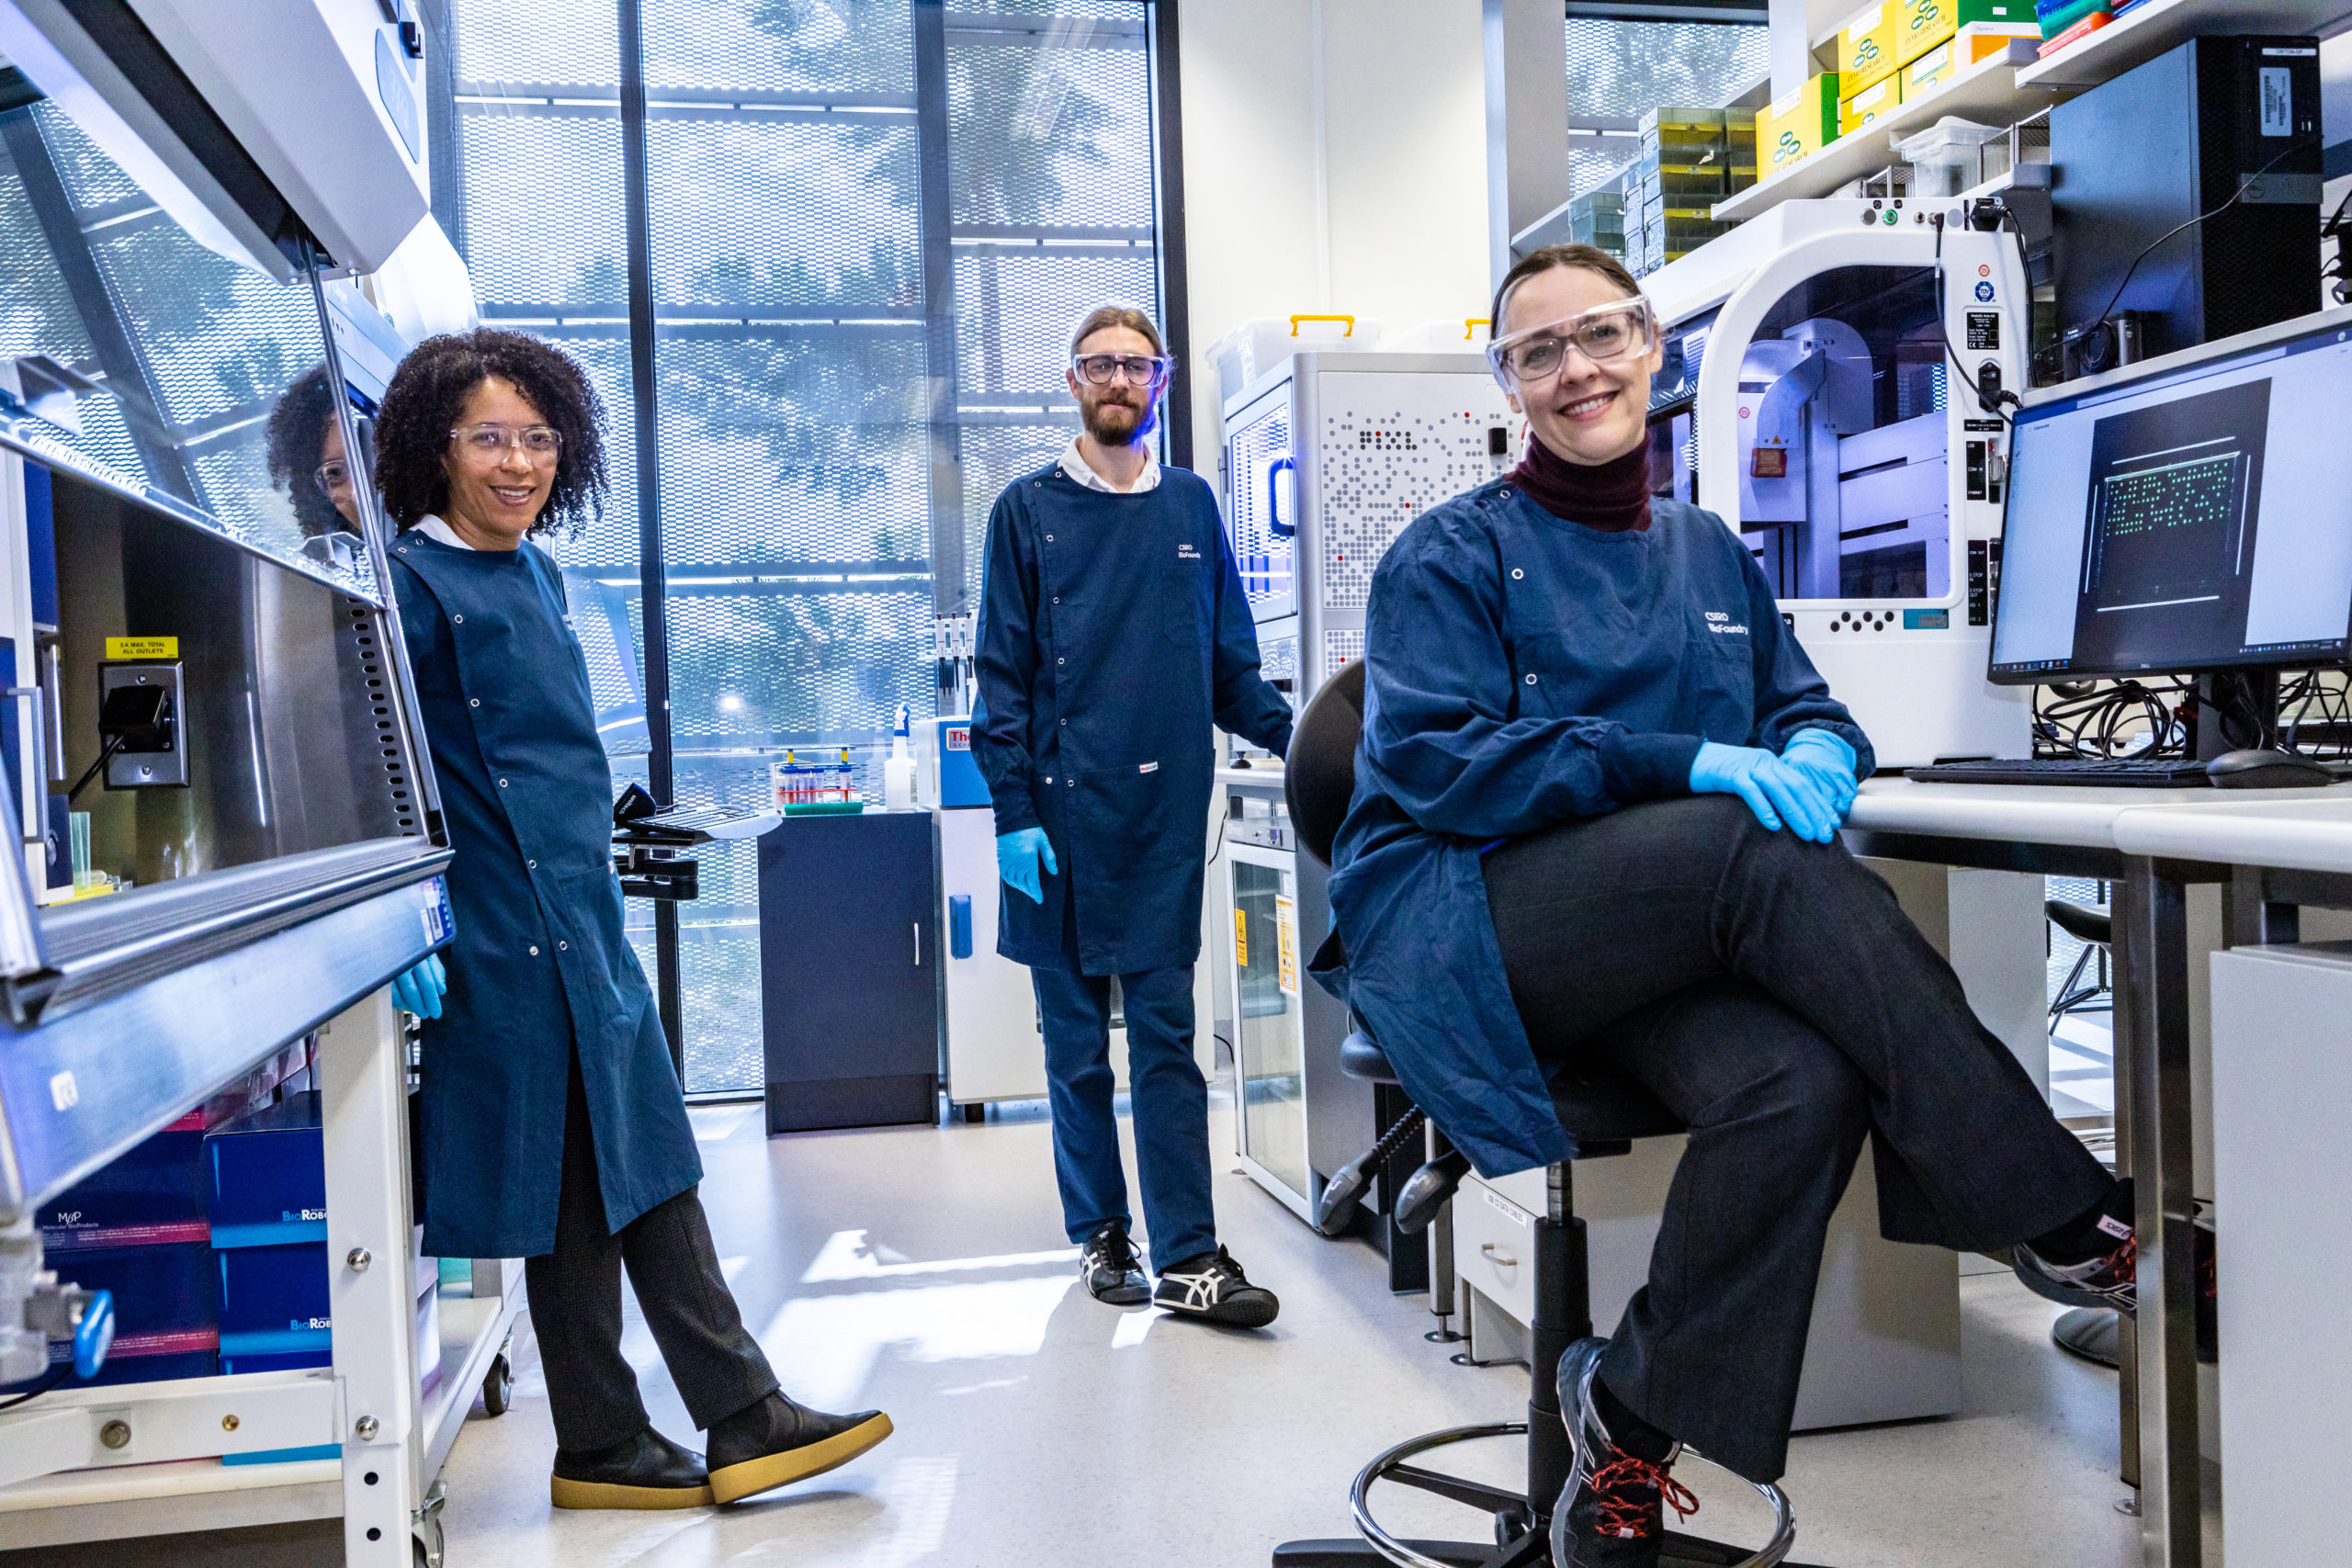 Synthetic biology team in lab gear smiling at camera